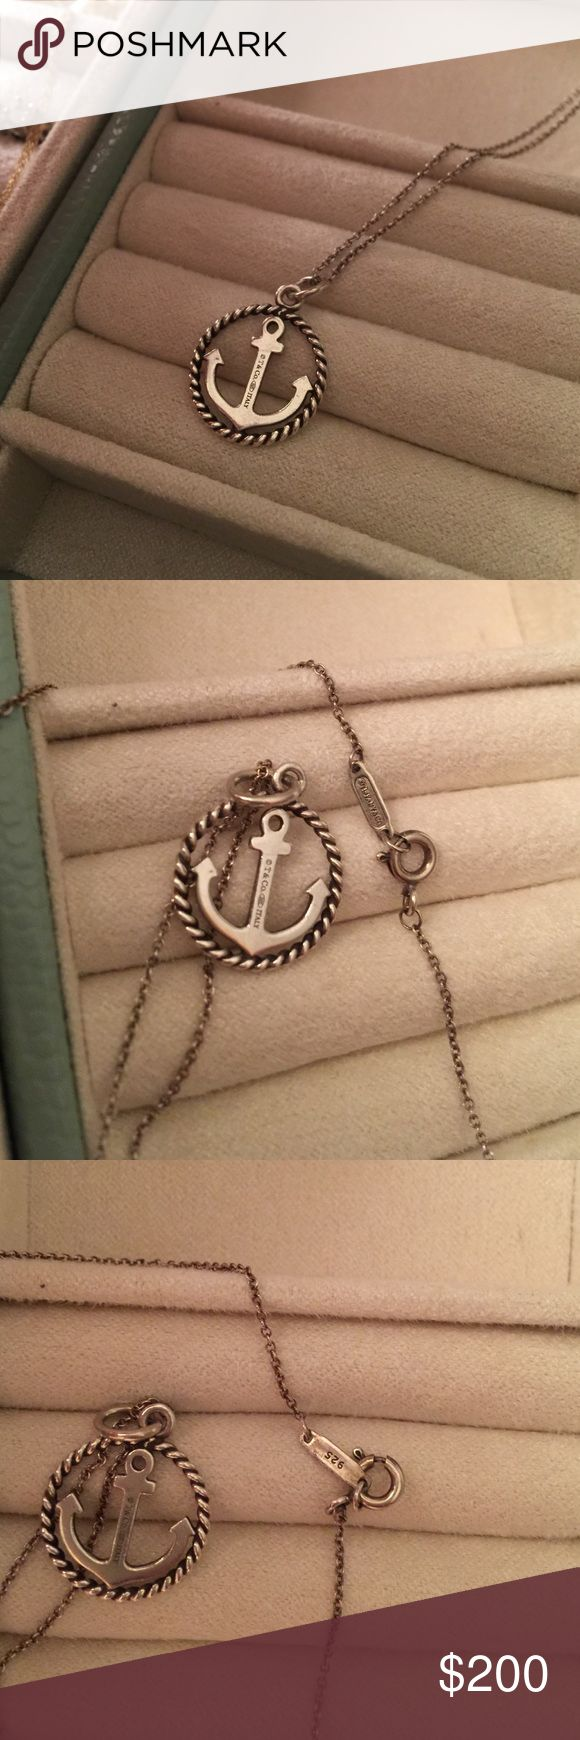 TIFFANY & CO- sterling silver anchor necklace Classic anchor with twisted wire- authentic Tiffany & Co. marked 925 and Tiffany stamp. A little tarnished but nothing silver cleaner couldn't take off. 16 in chain Tiffany & Co. Jewelry Necklaces